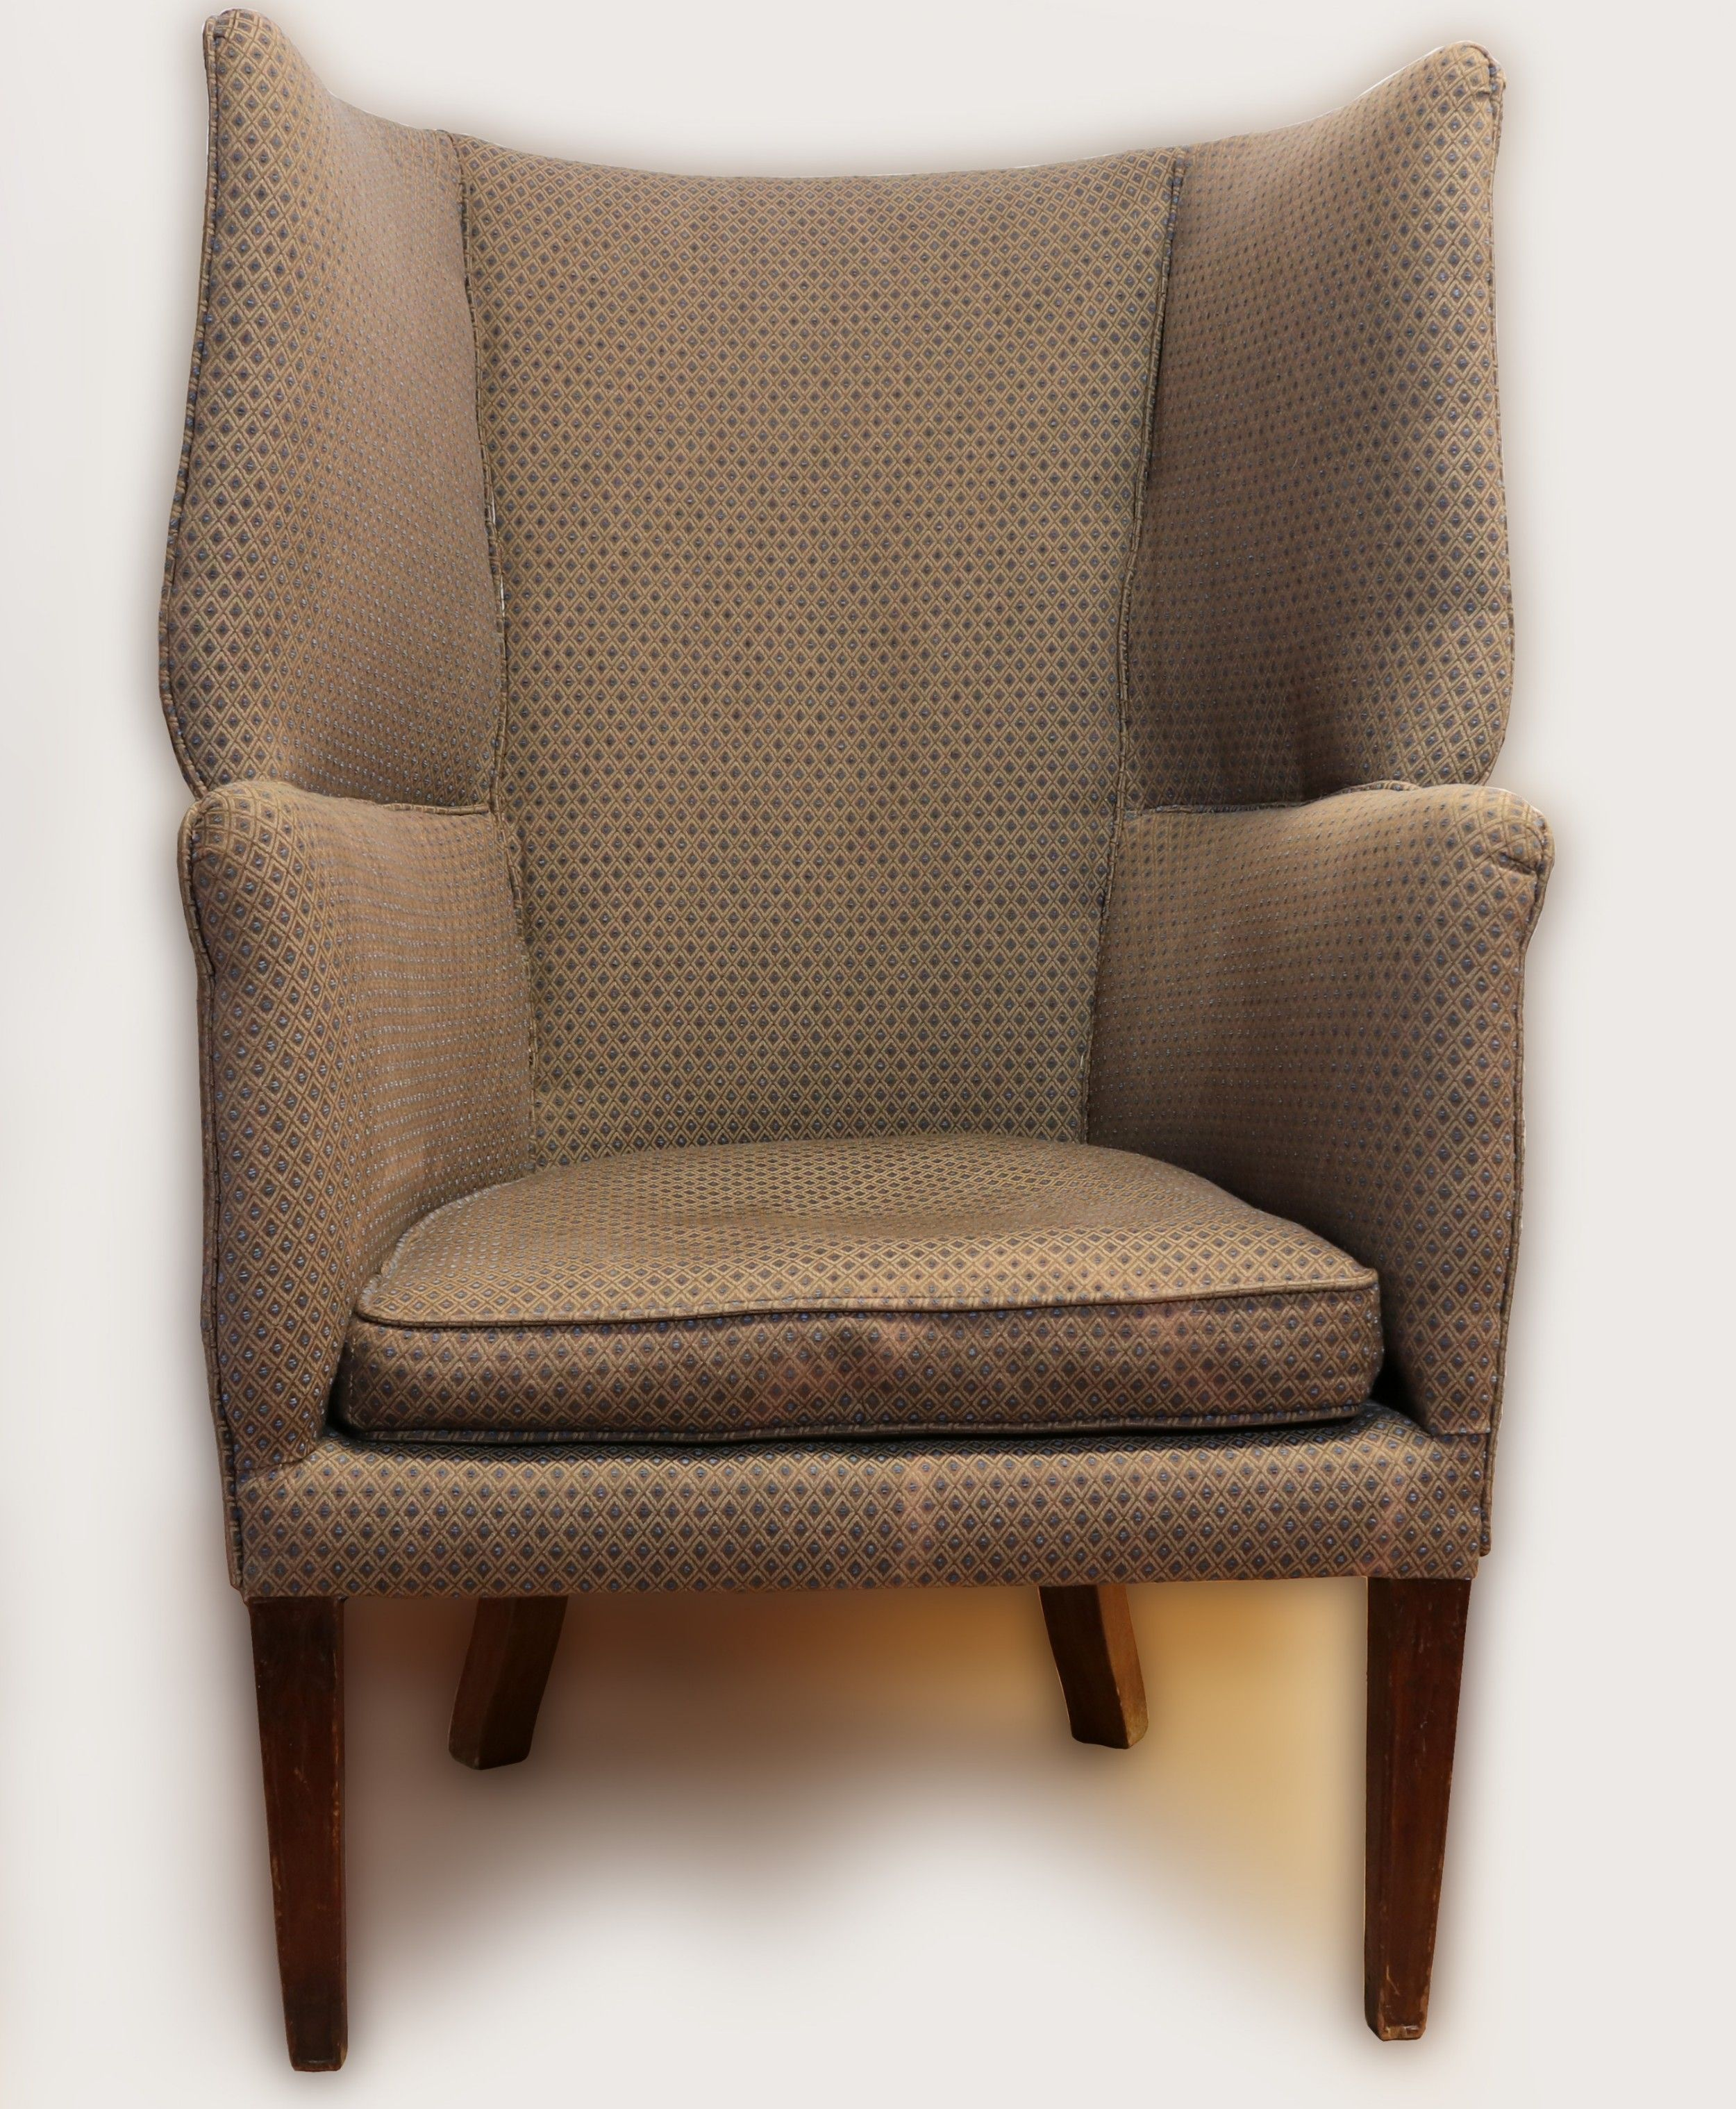 Iii Mahogany Barrelshaped Wing Orkney Chair